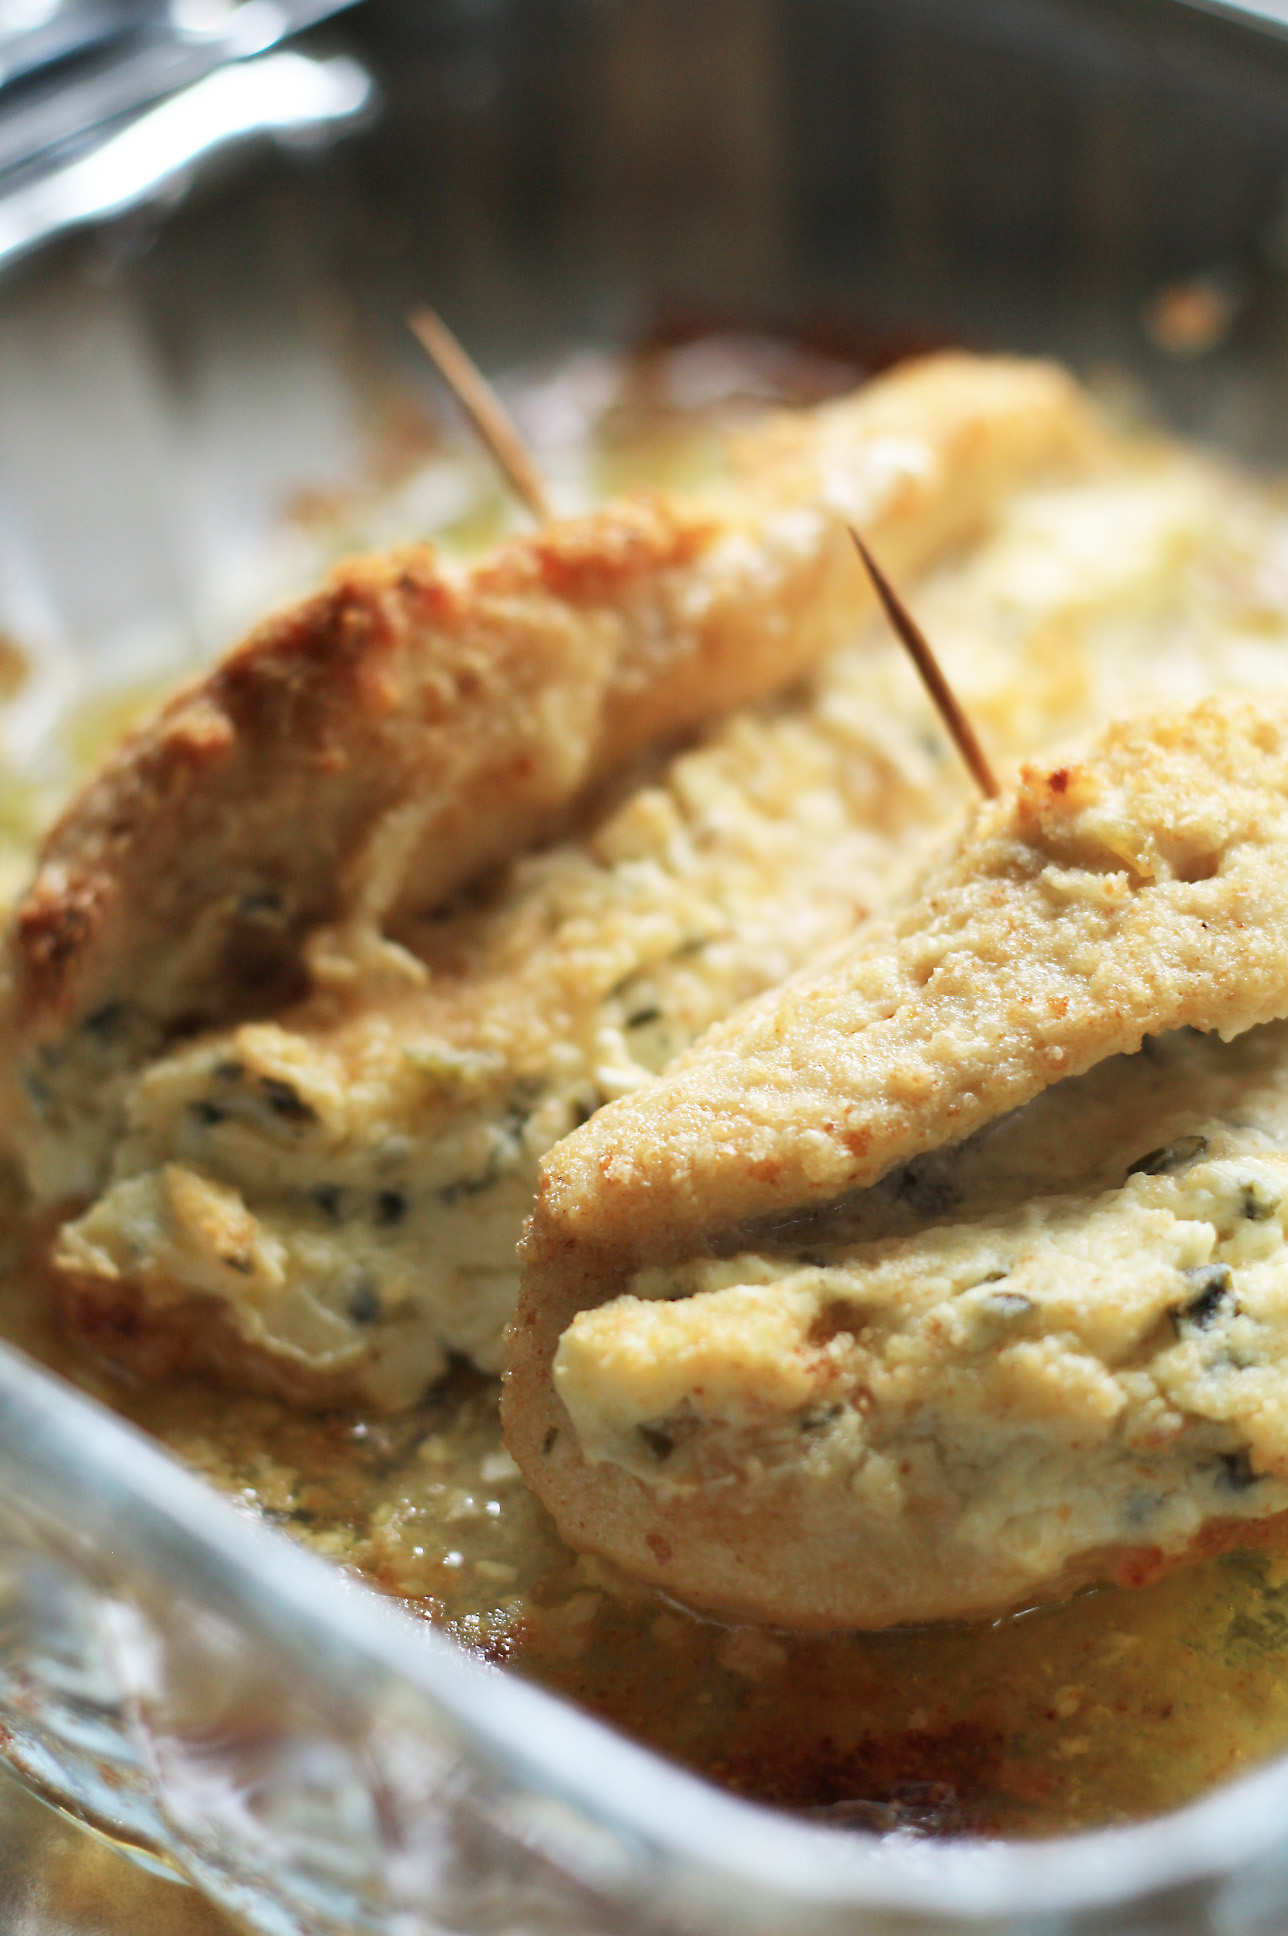 Cream Cheese and Chive Stuffed Chicken – Cooking Up Cottage